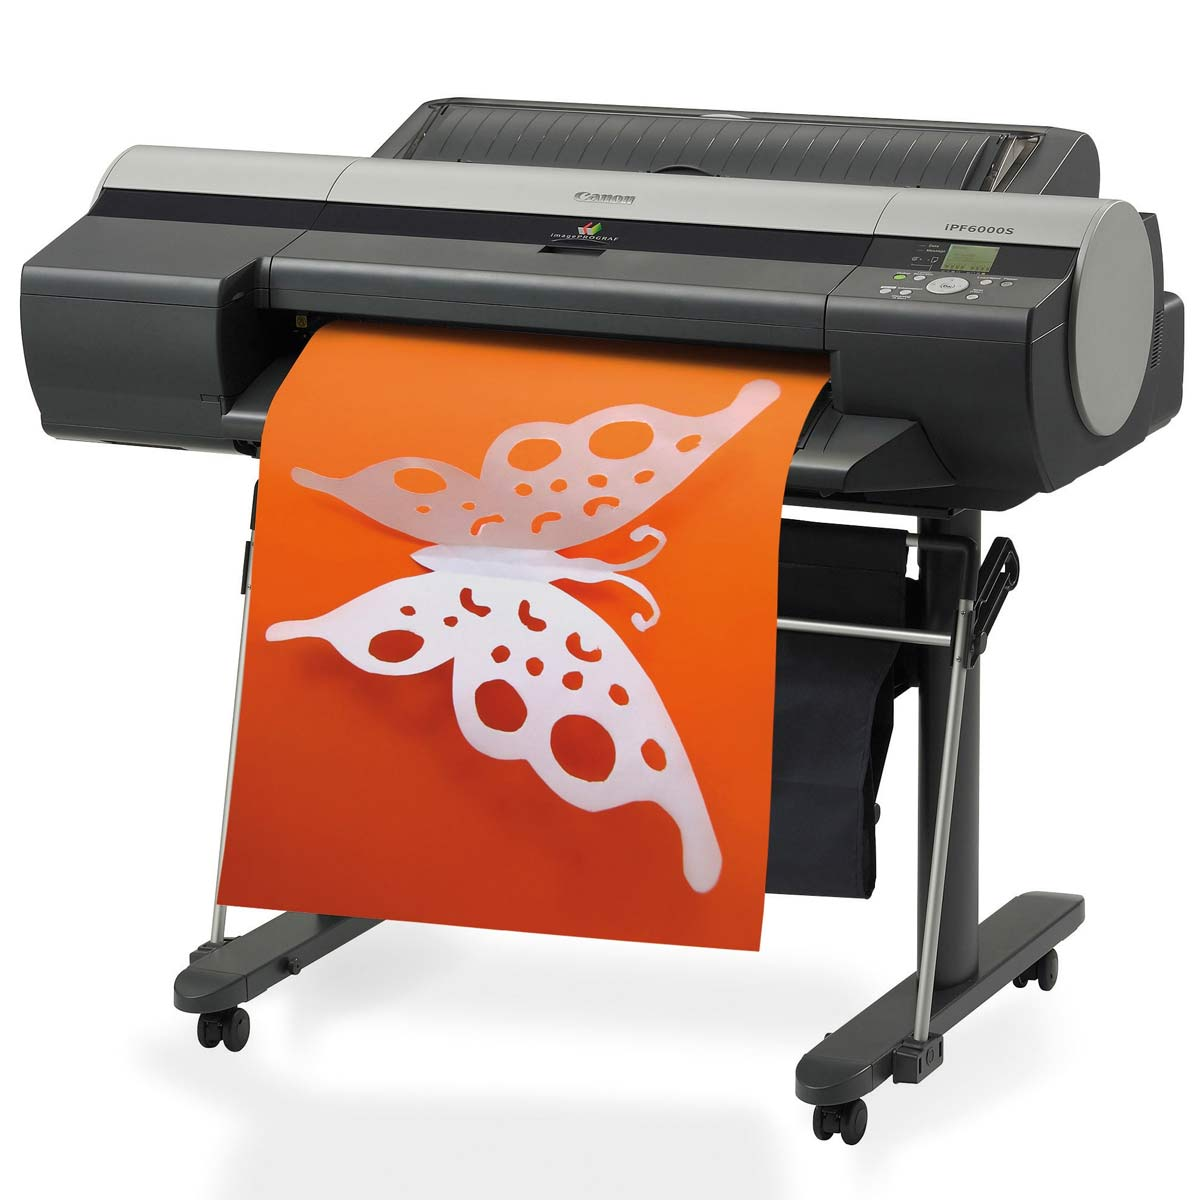 Compact and Easy to Connect The Brother MFC-JDW offers easy wireless setup and mobile device printing in an economical color inkjet All-in-One.